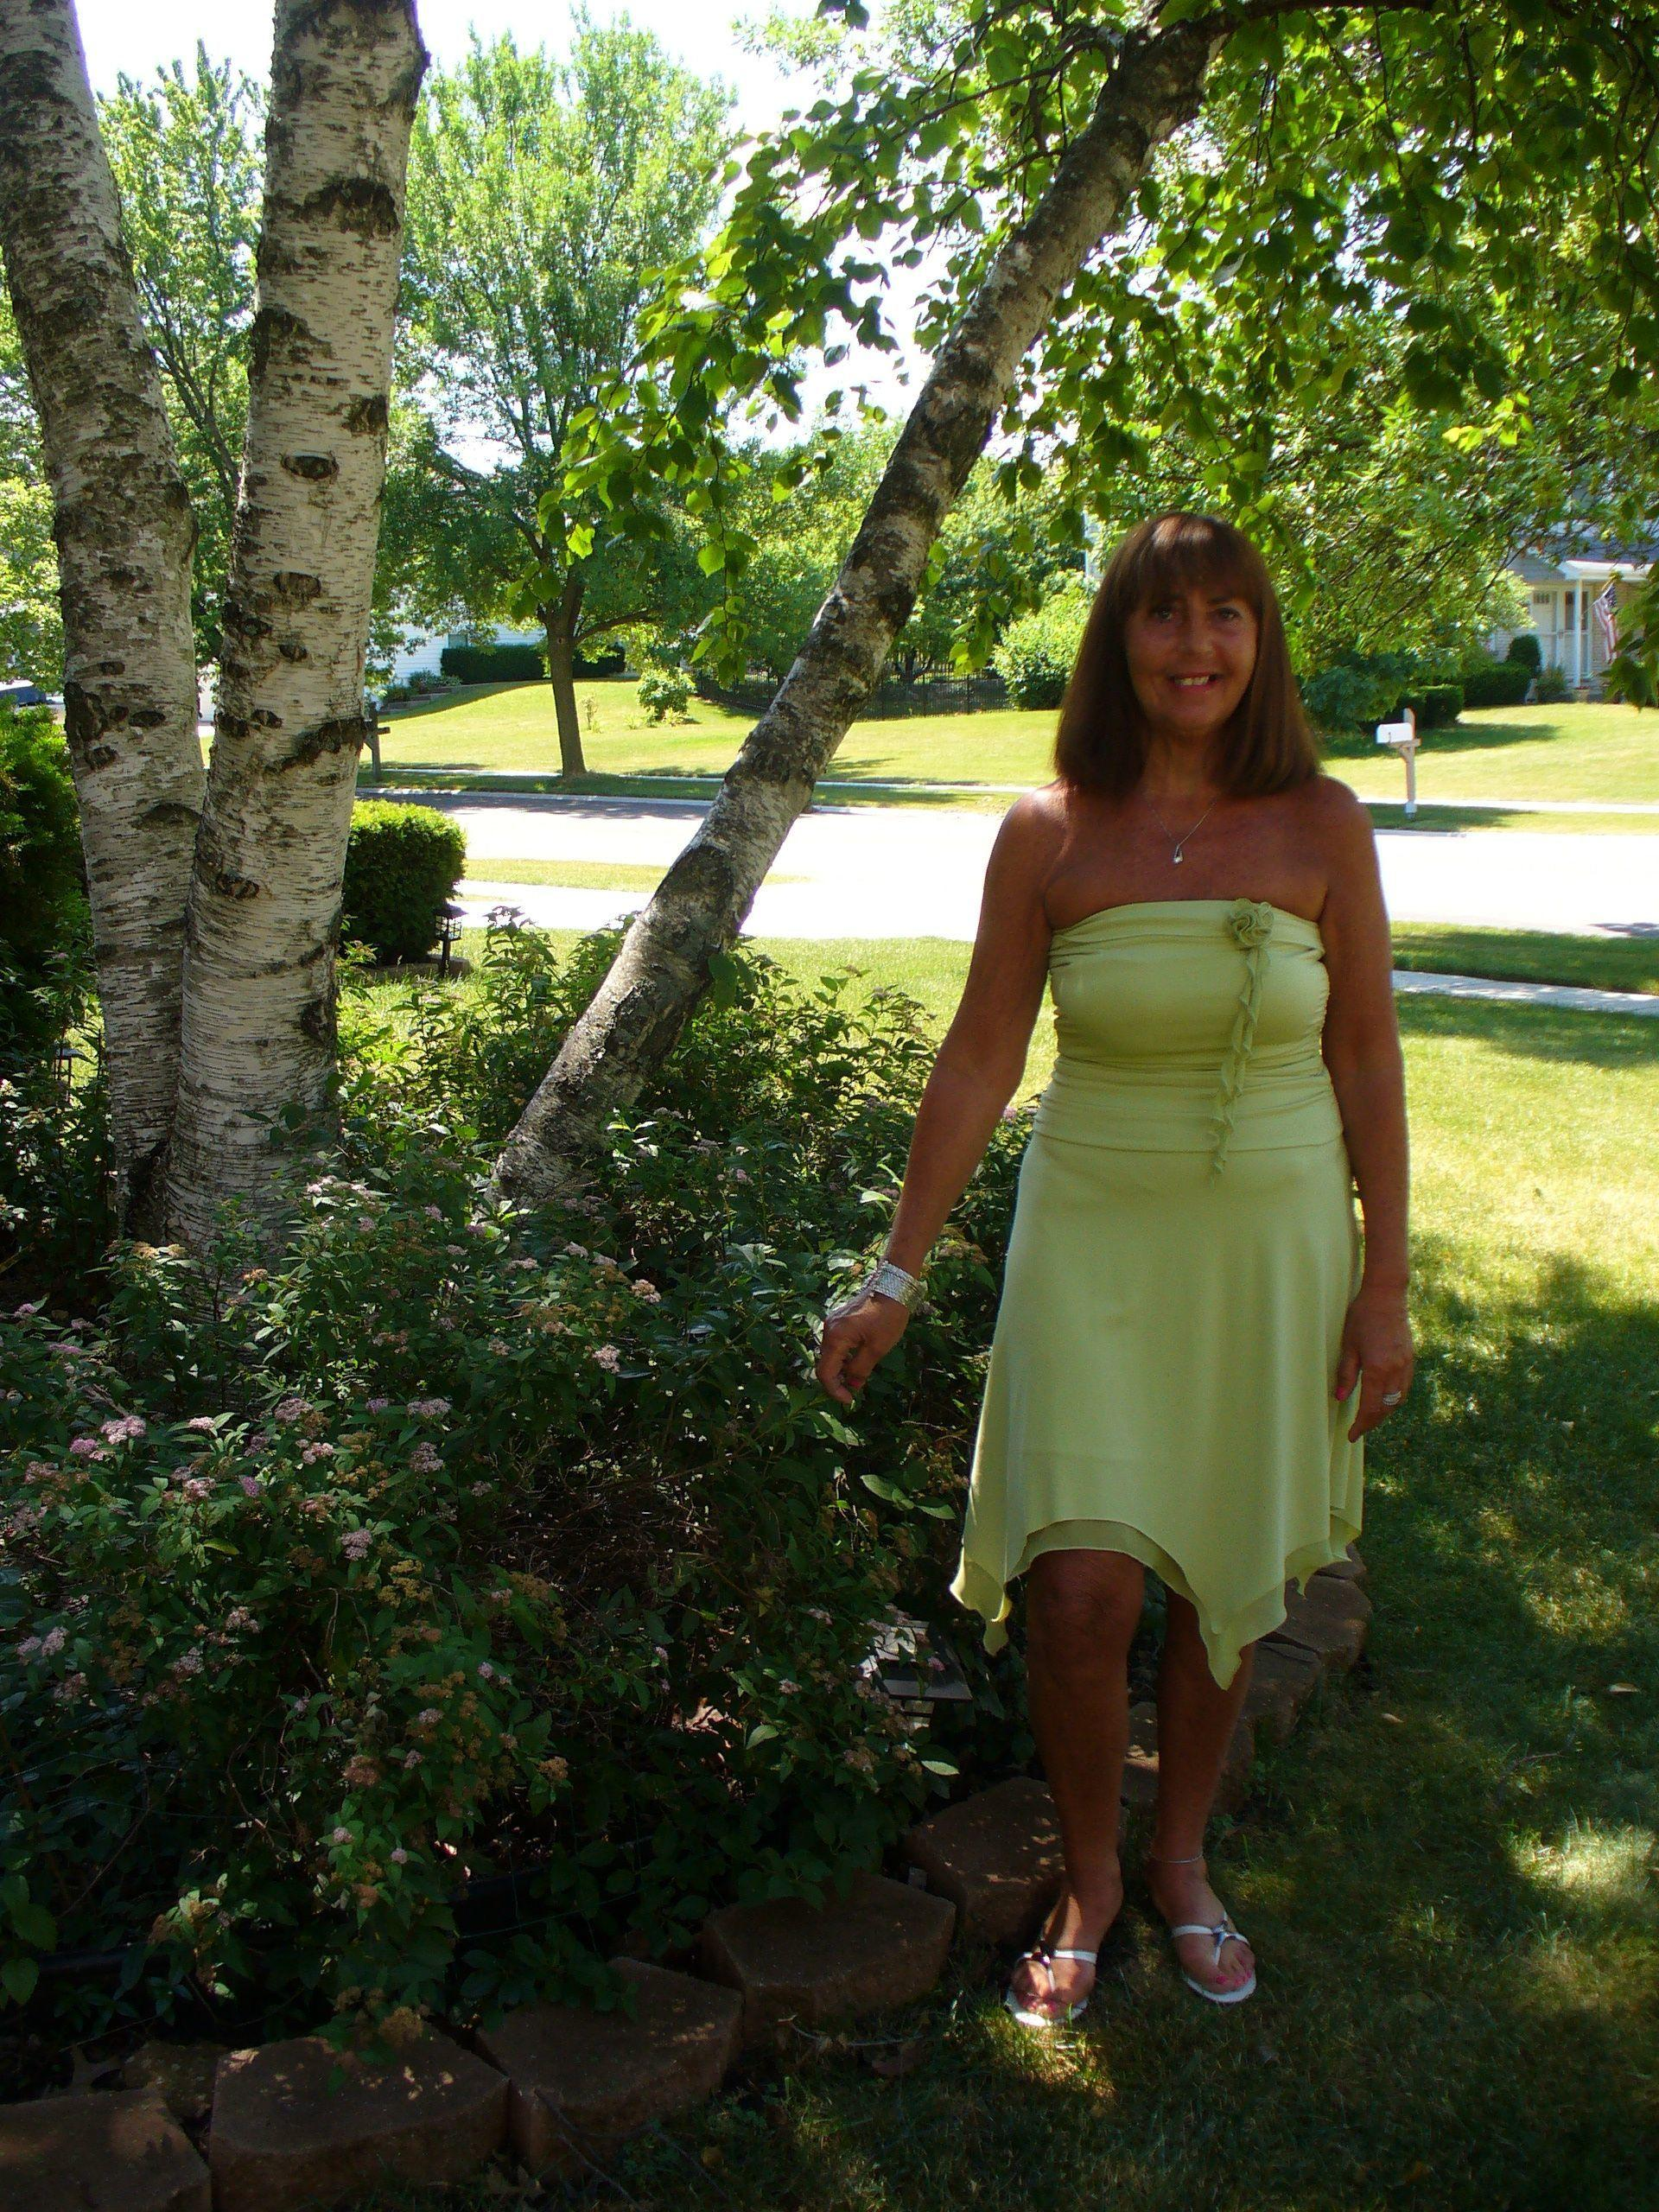 singles over 50 in arlington heights Meet single men in arlington heights il online & chat in the forums dhu is a 100% free dating site to find single men in arlington heights.